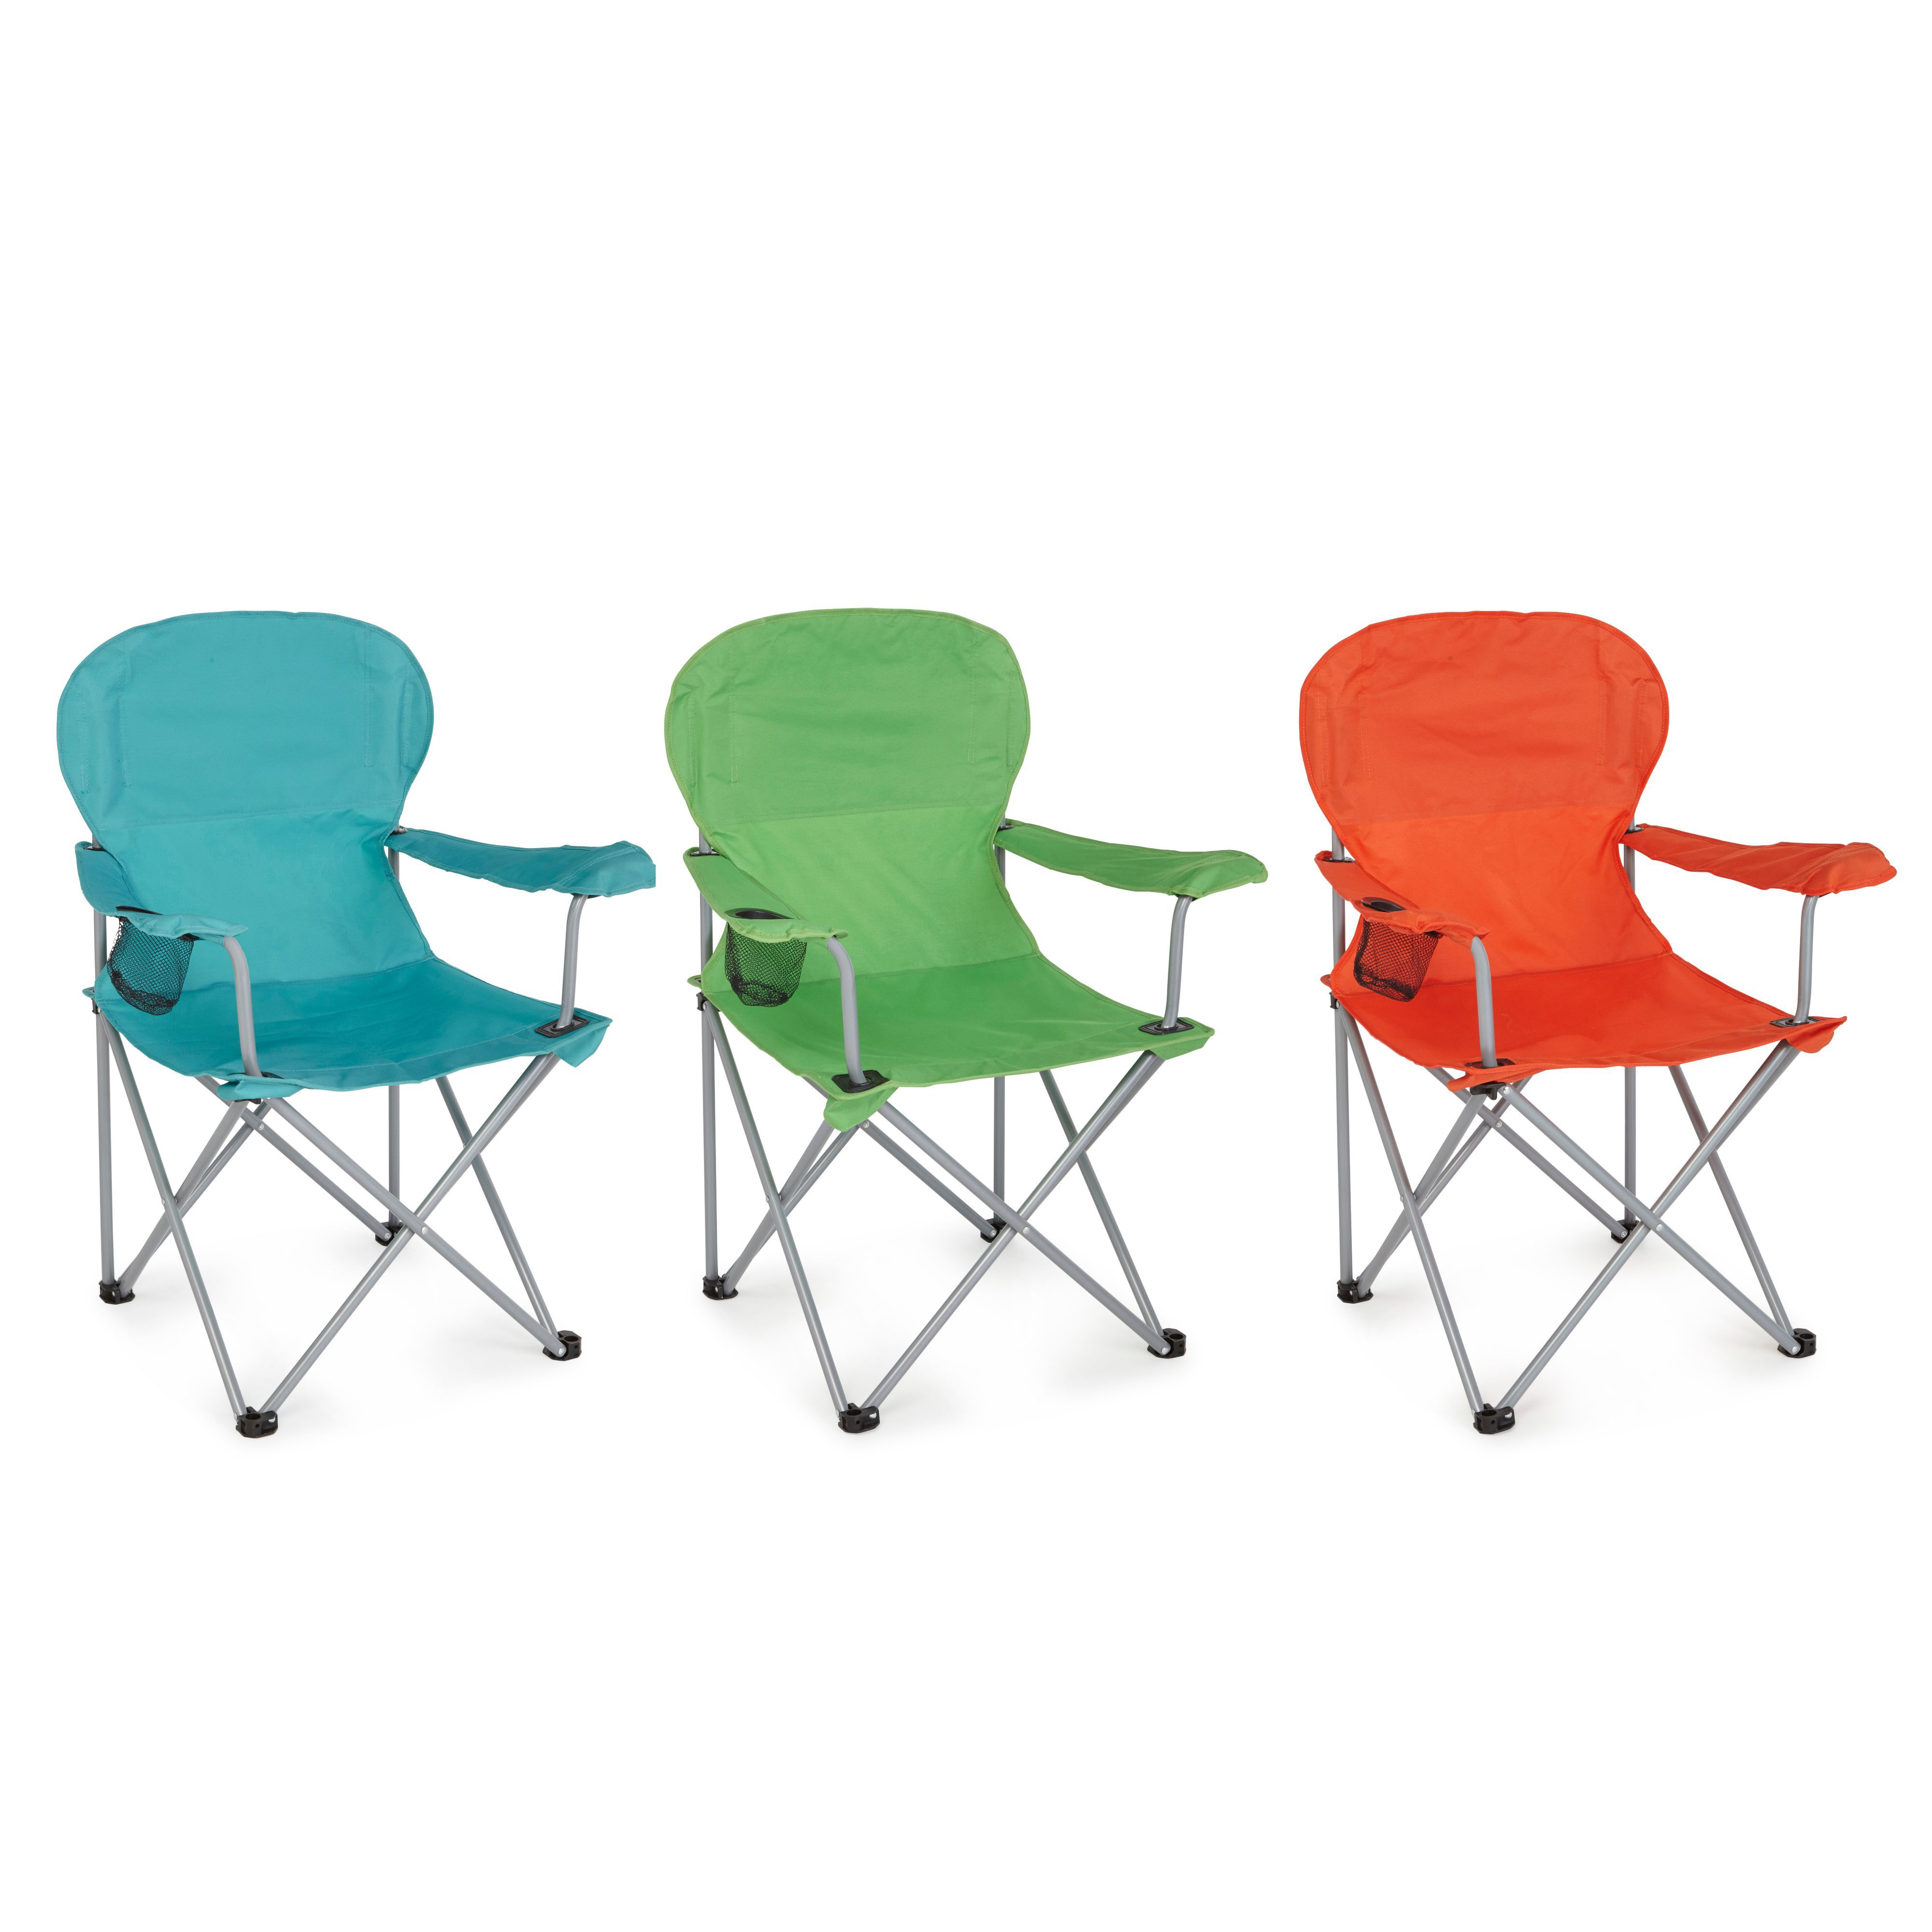 Molloy Metal Camping Chair Departments